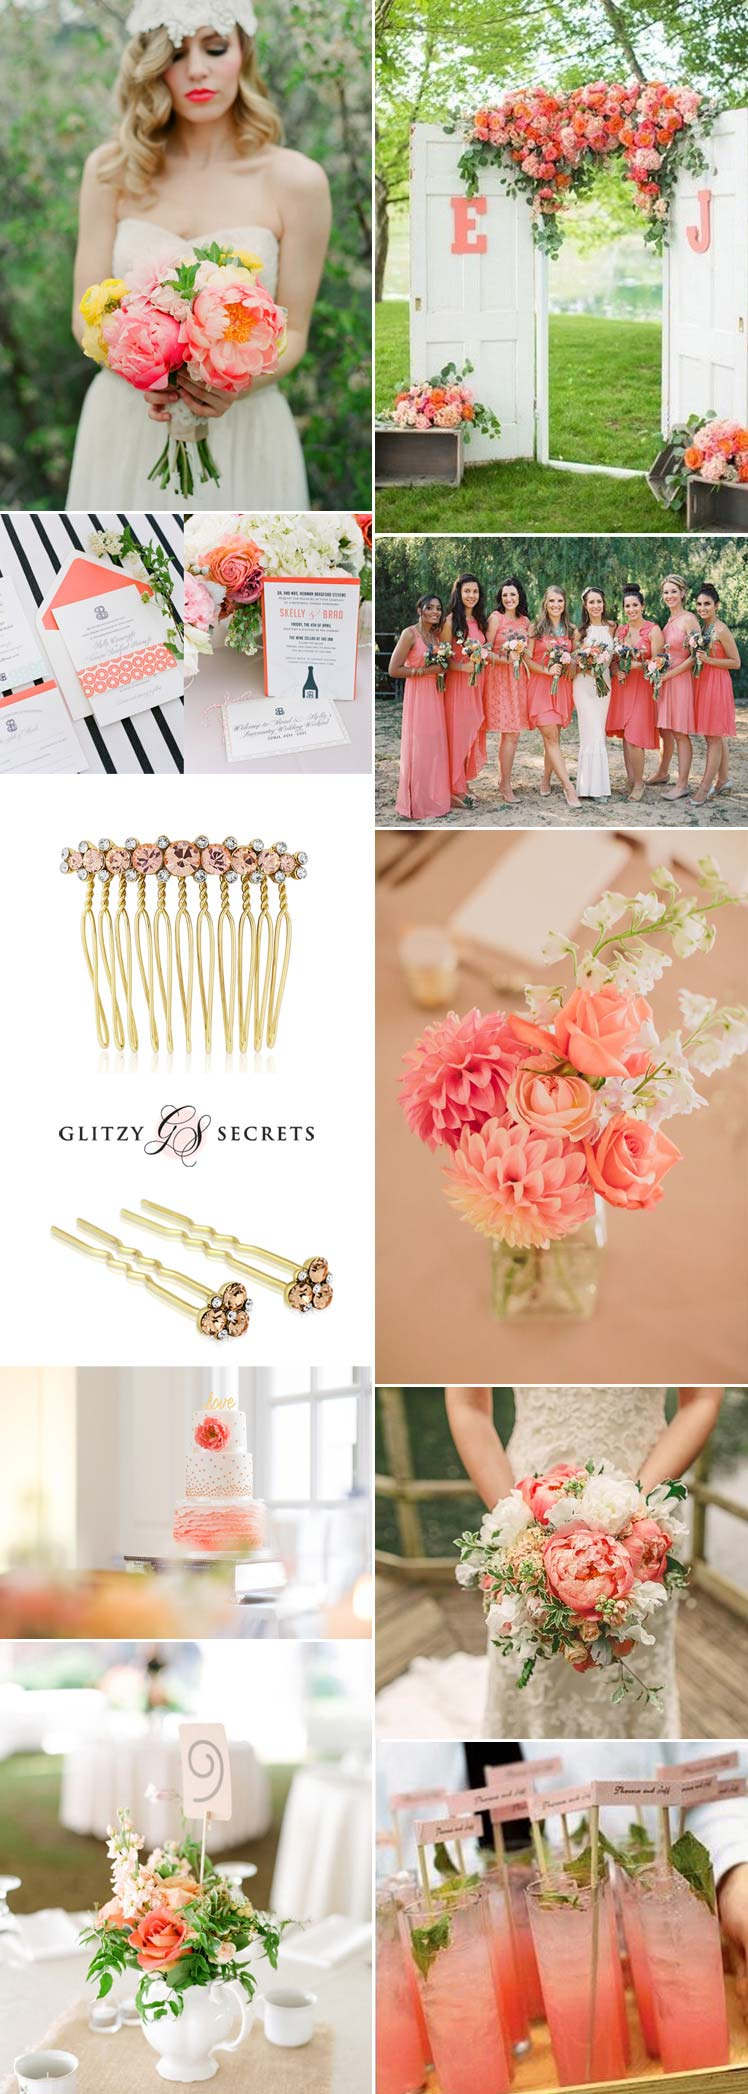 Pretty coral wedding ideas